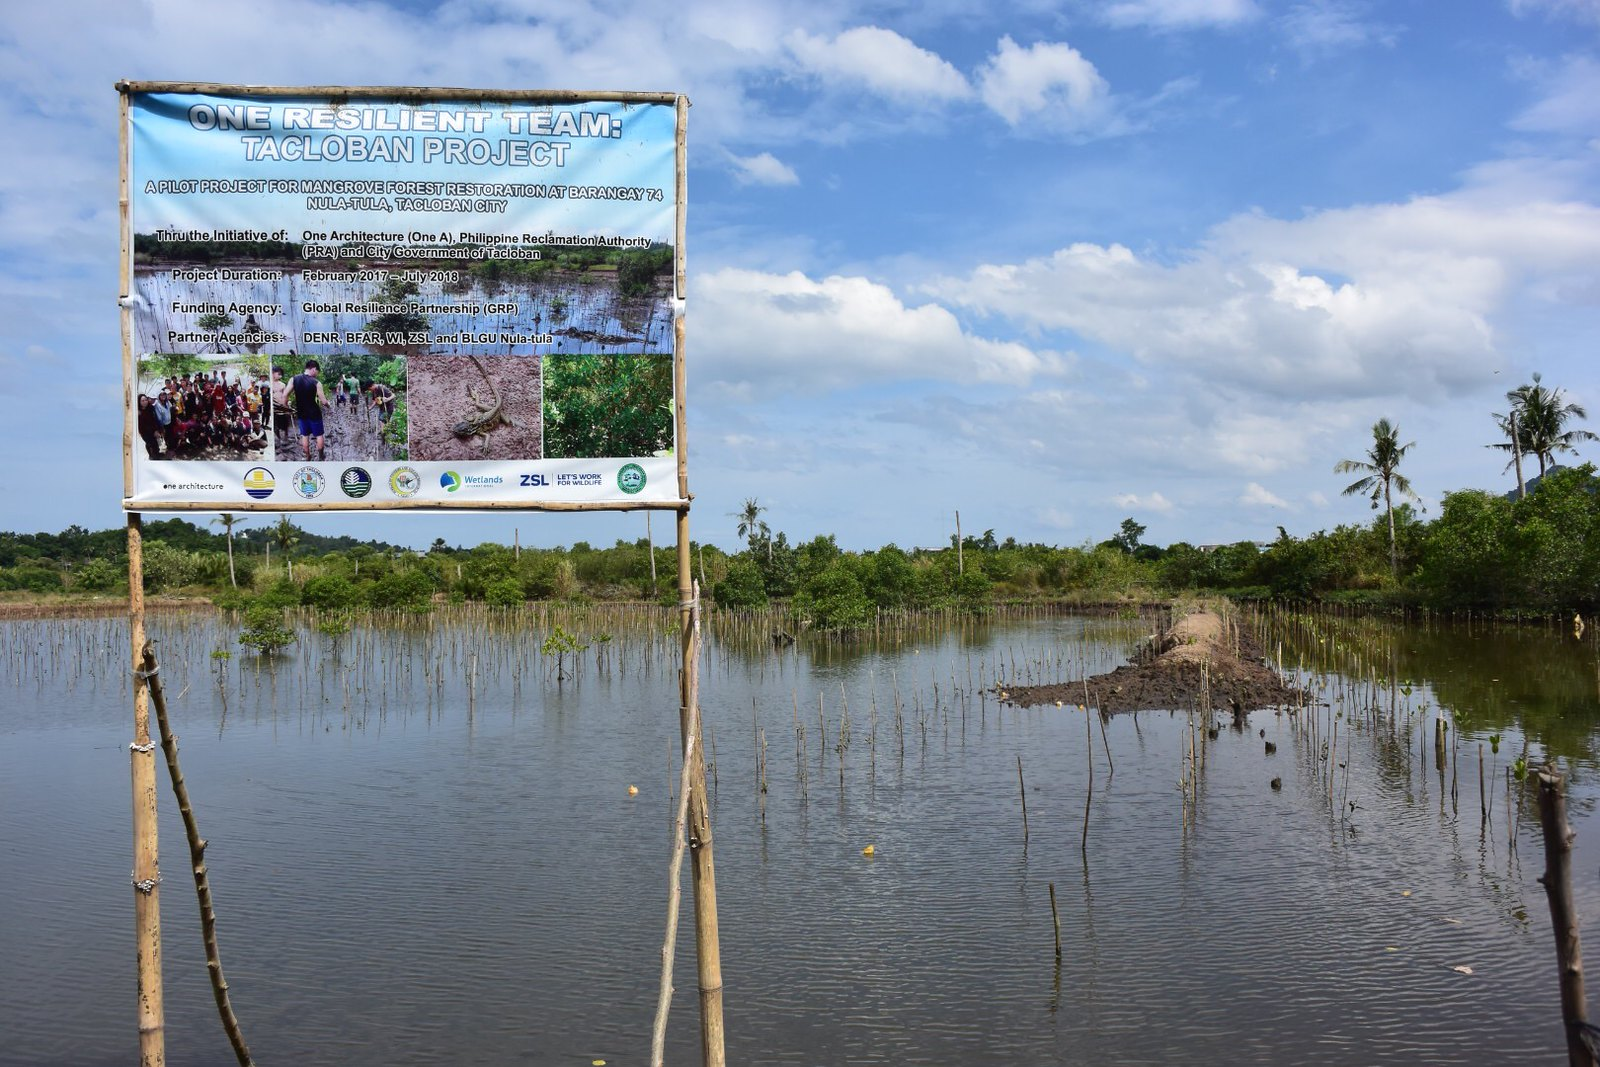 <p>Government officials and community members are working together in the Philippines to adapt to climate change, through projects like planting mangroves. Photo by Nicola Ward/Climate Centre.</p>